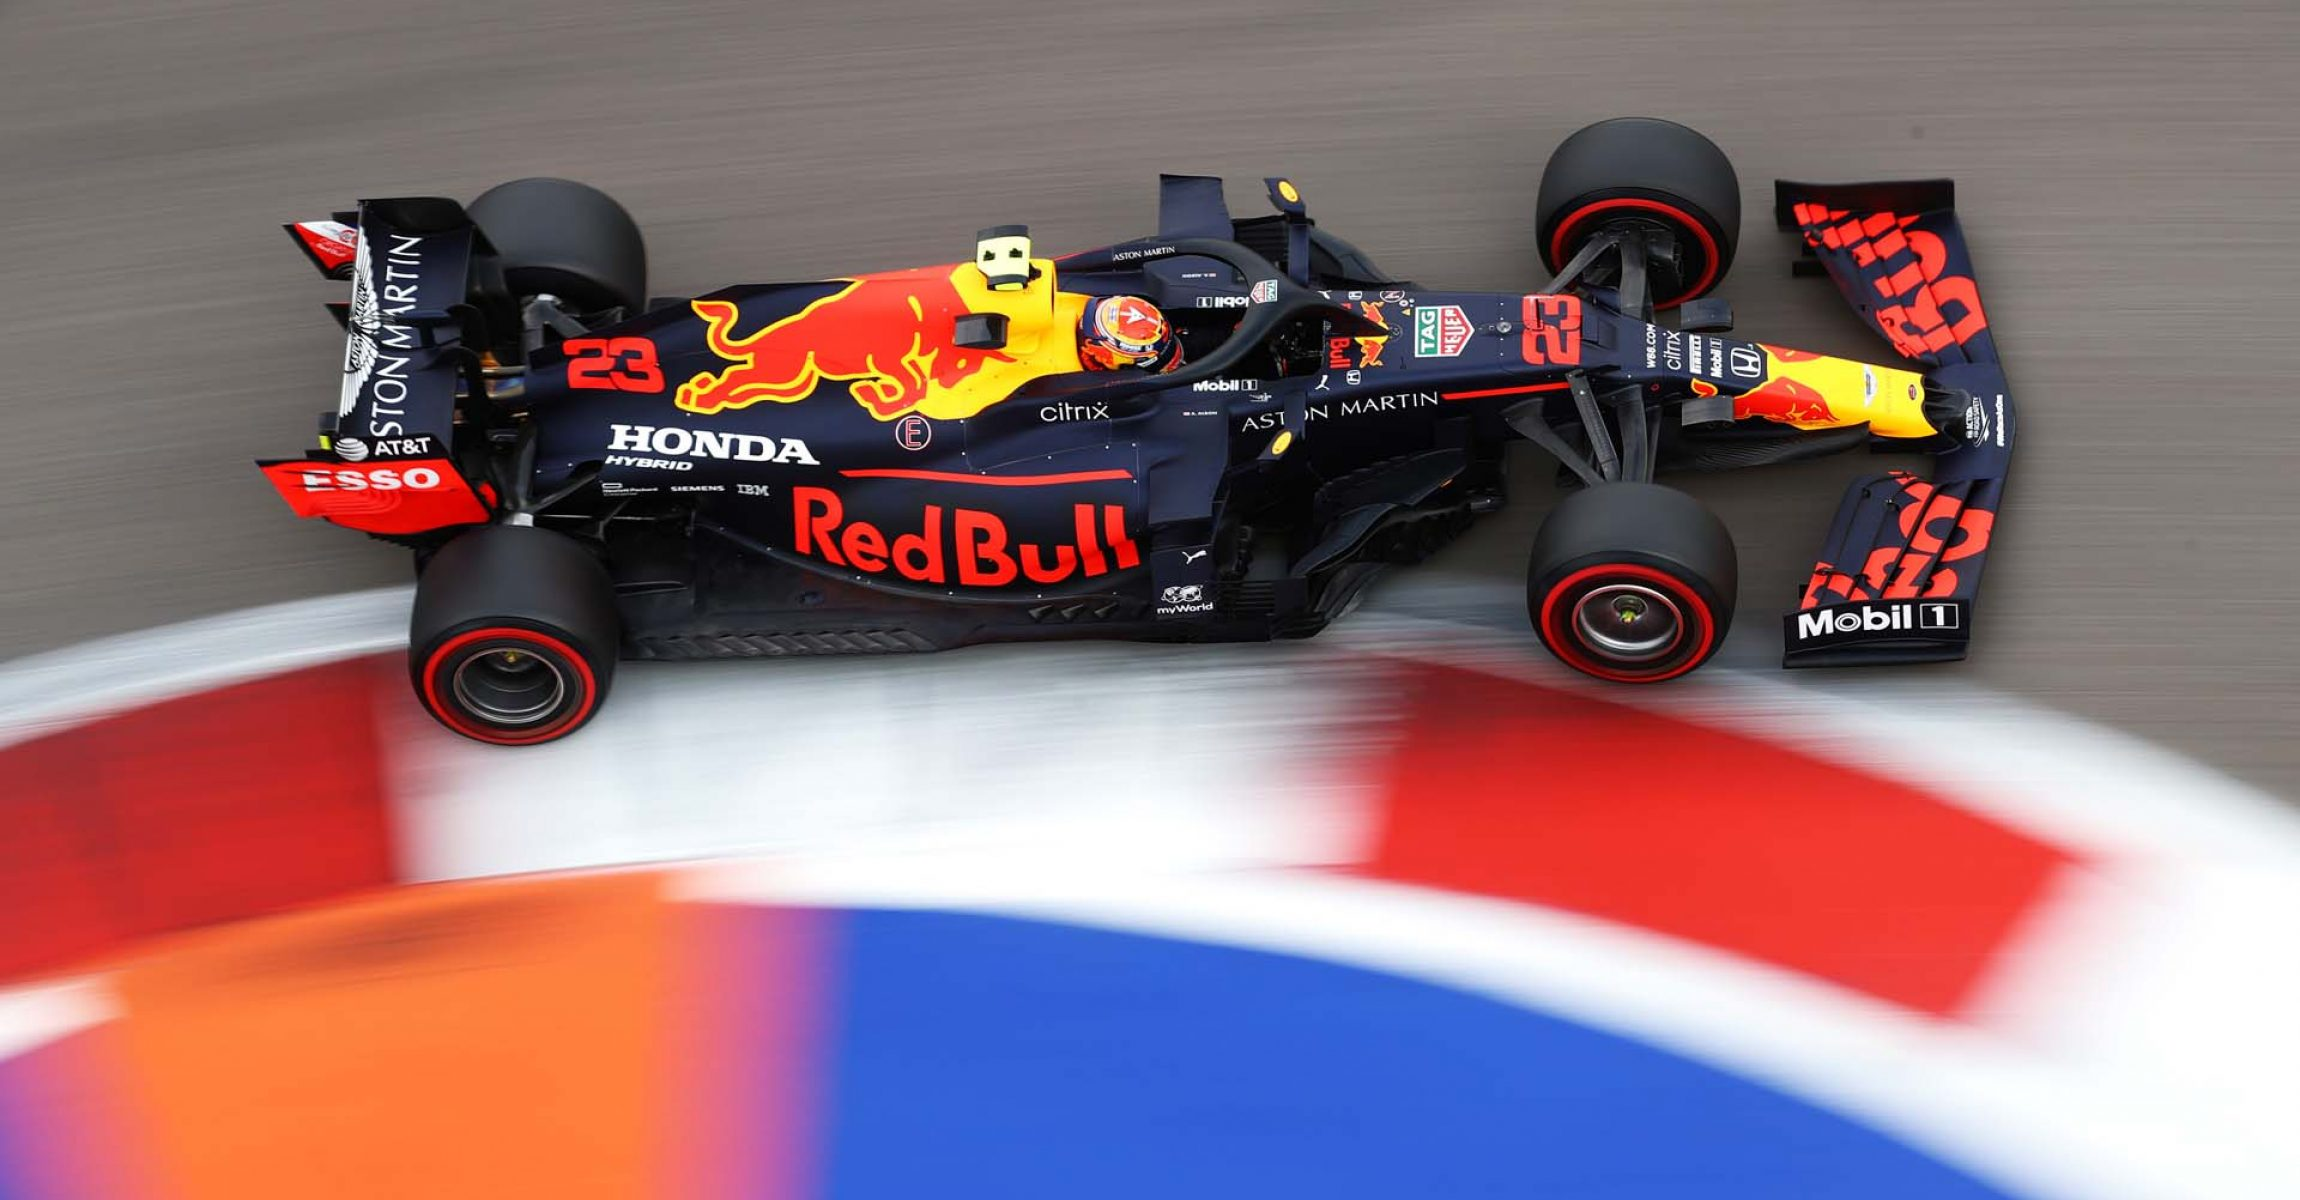 SOCHI, RUSSIA - SEPTEMBER 26: Alexander Albon of Thailand driving the (23) Aston Martin Red Bull Racing RB16 on track during qualifying ahead of the F1 Grand Prix of Russia at Sochi Autodrom on September 26, 2020 in Sochi, Russia. (Photo by Bryn Lennon/Getty Images) // Getty Images / Red Bull Content Pool  // SI202009260187 // Usage for editorial use only //